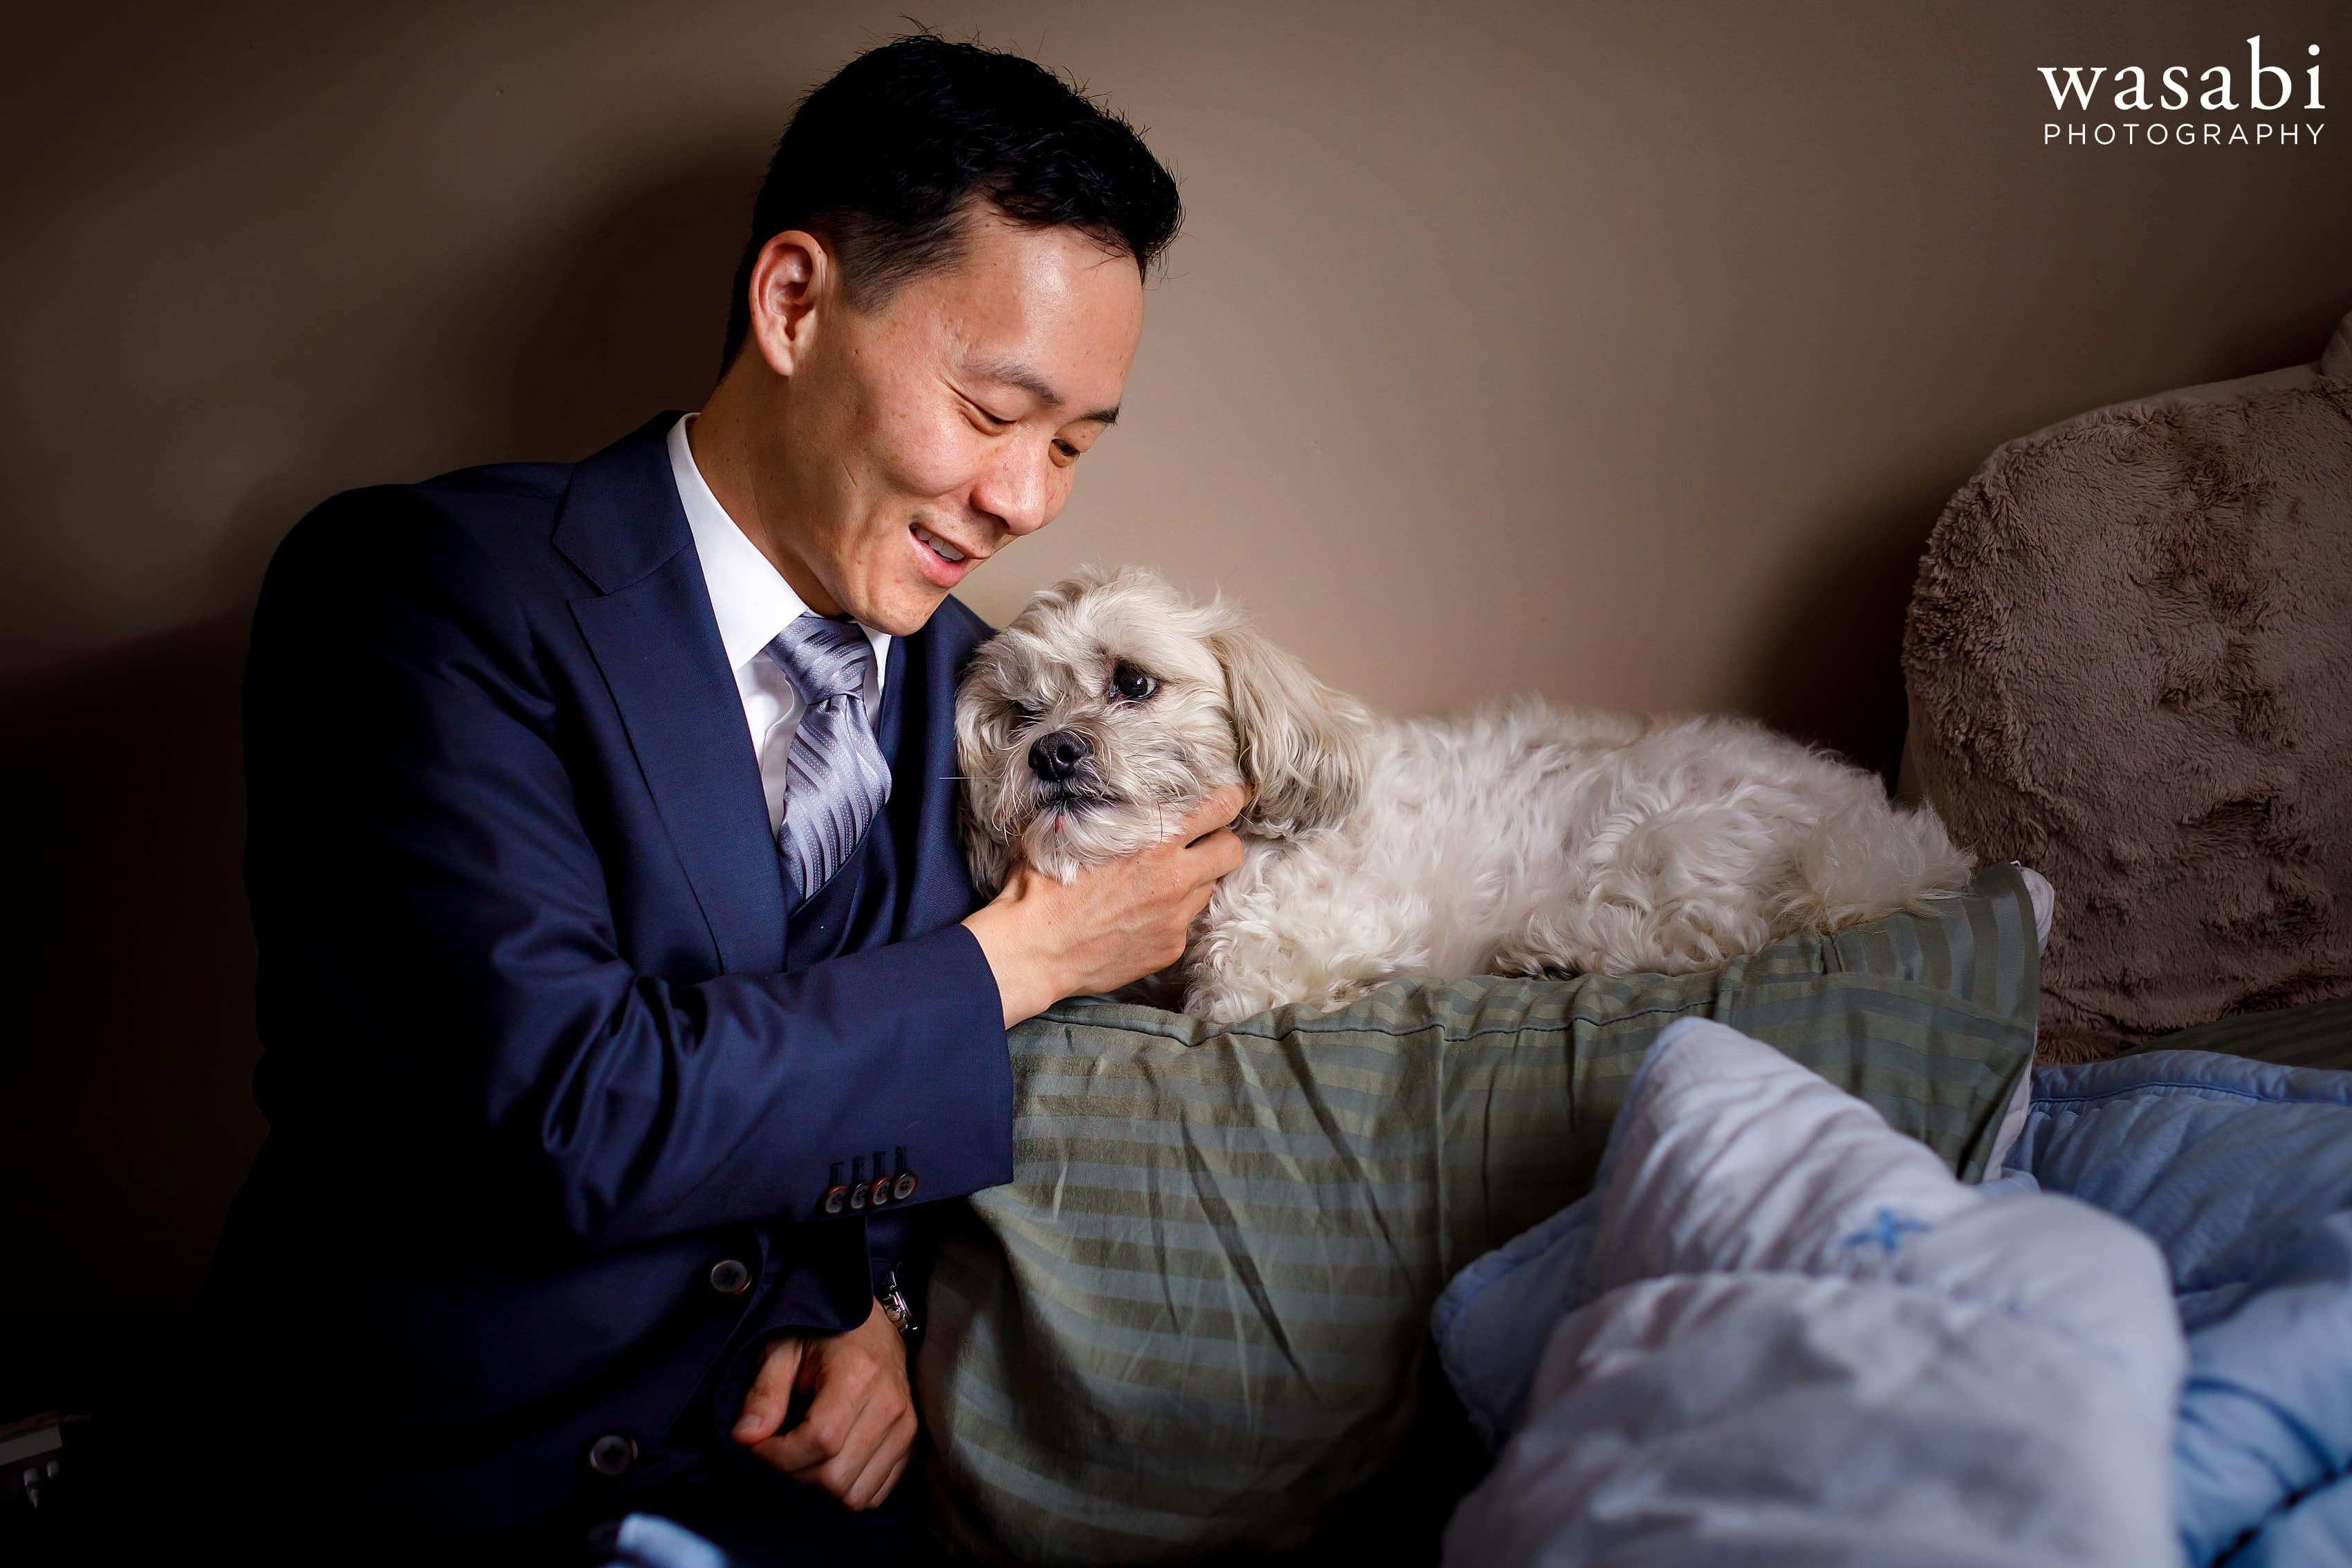 groom and dog while getting ready for wedding